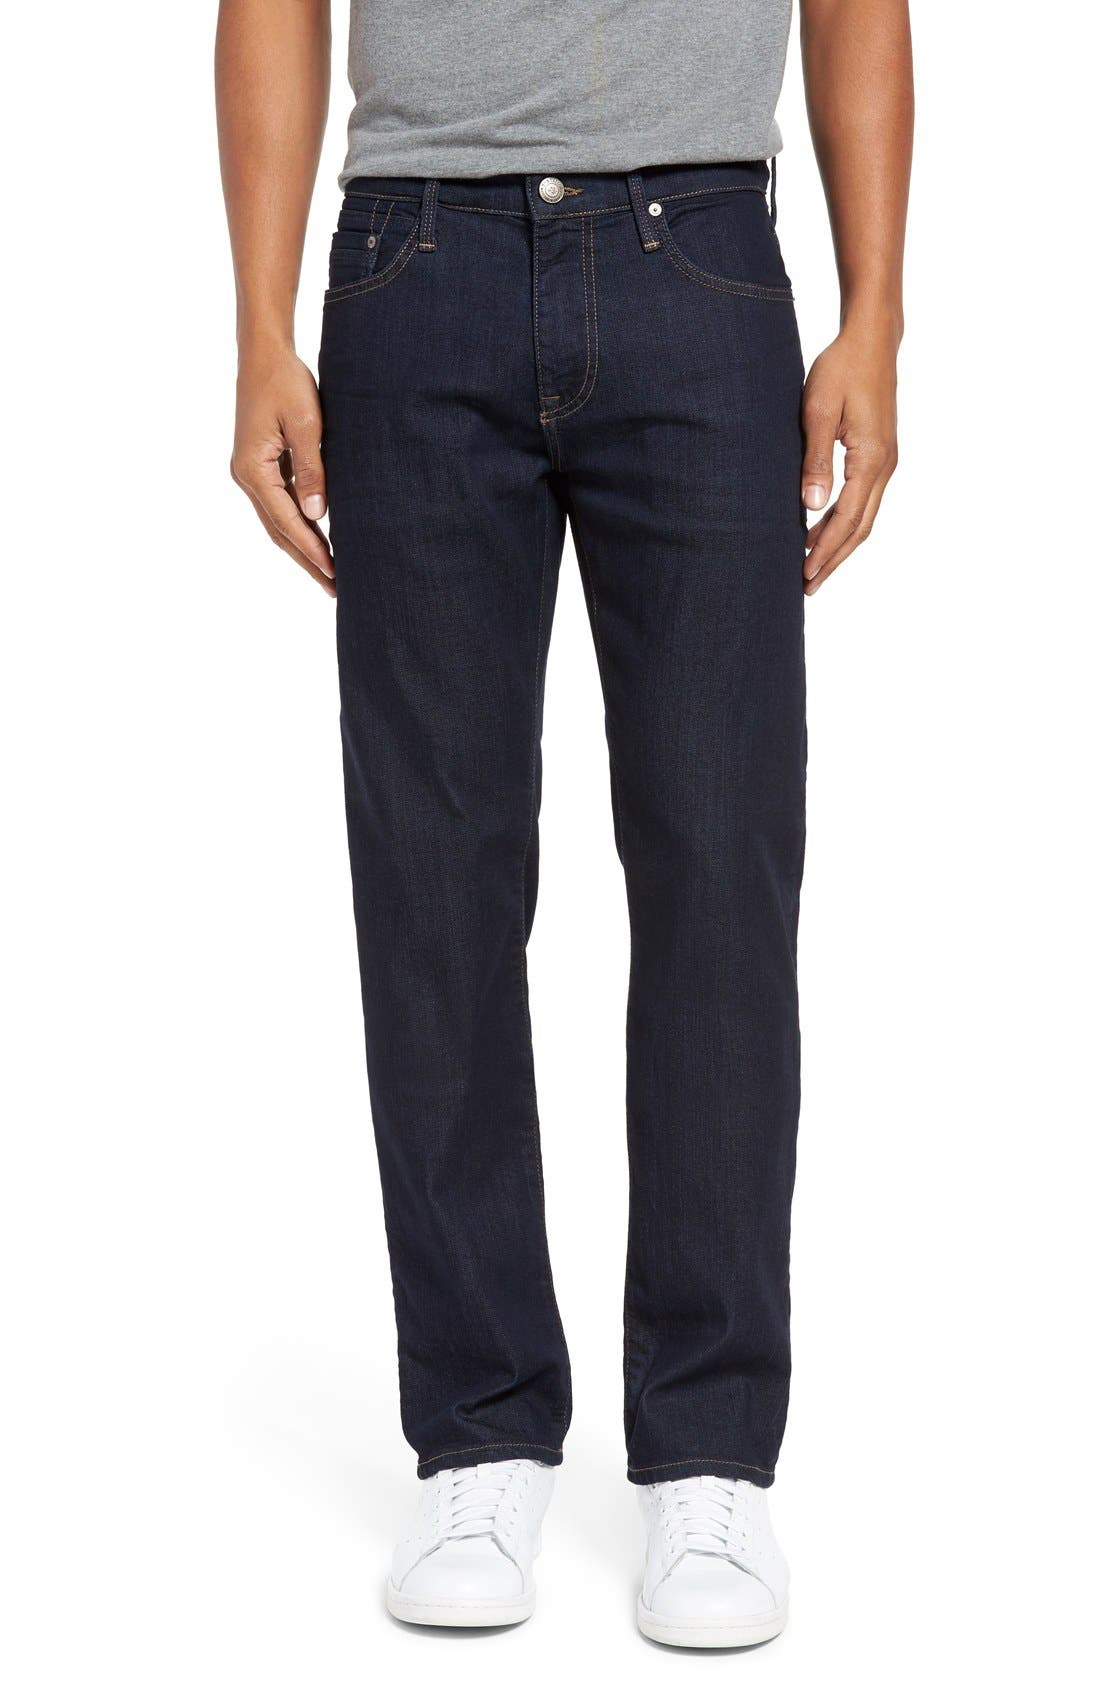 'Zach' Straight Leg Jeans,                         Main,                         color, Dark Blue